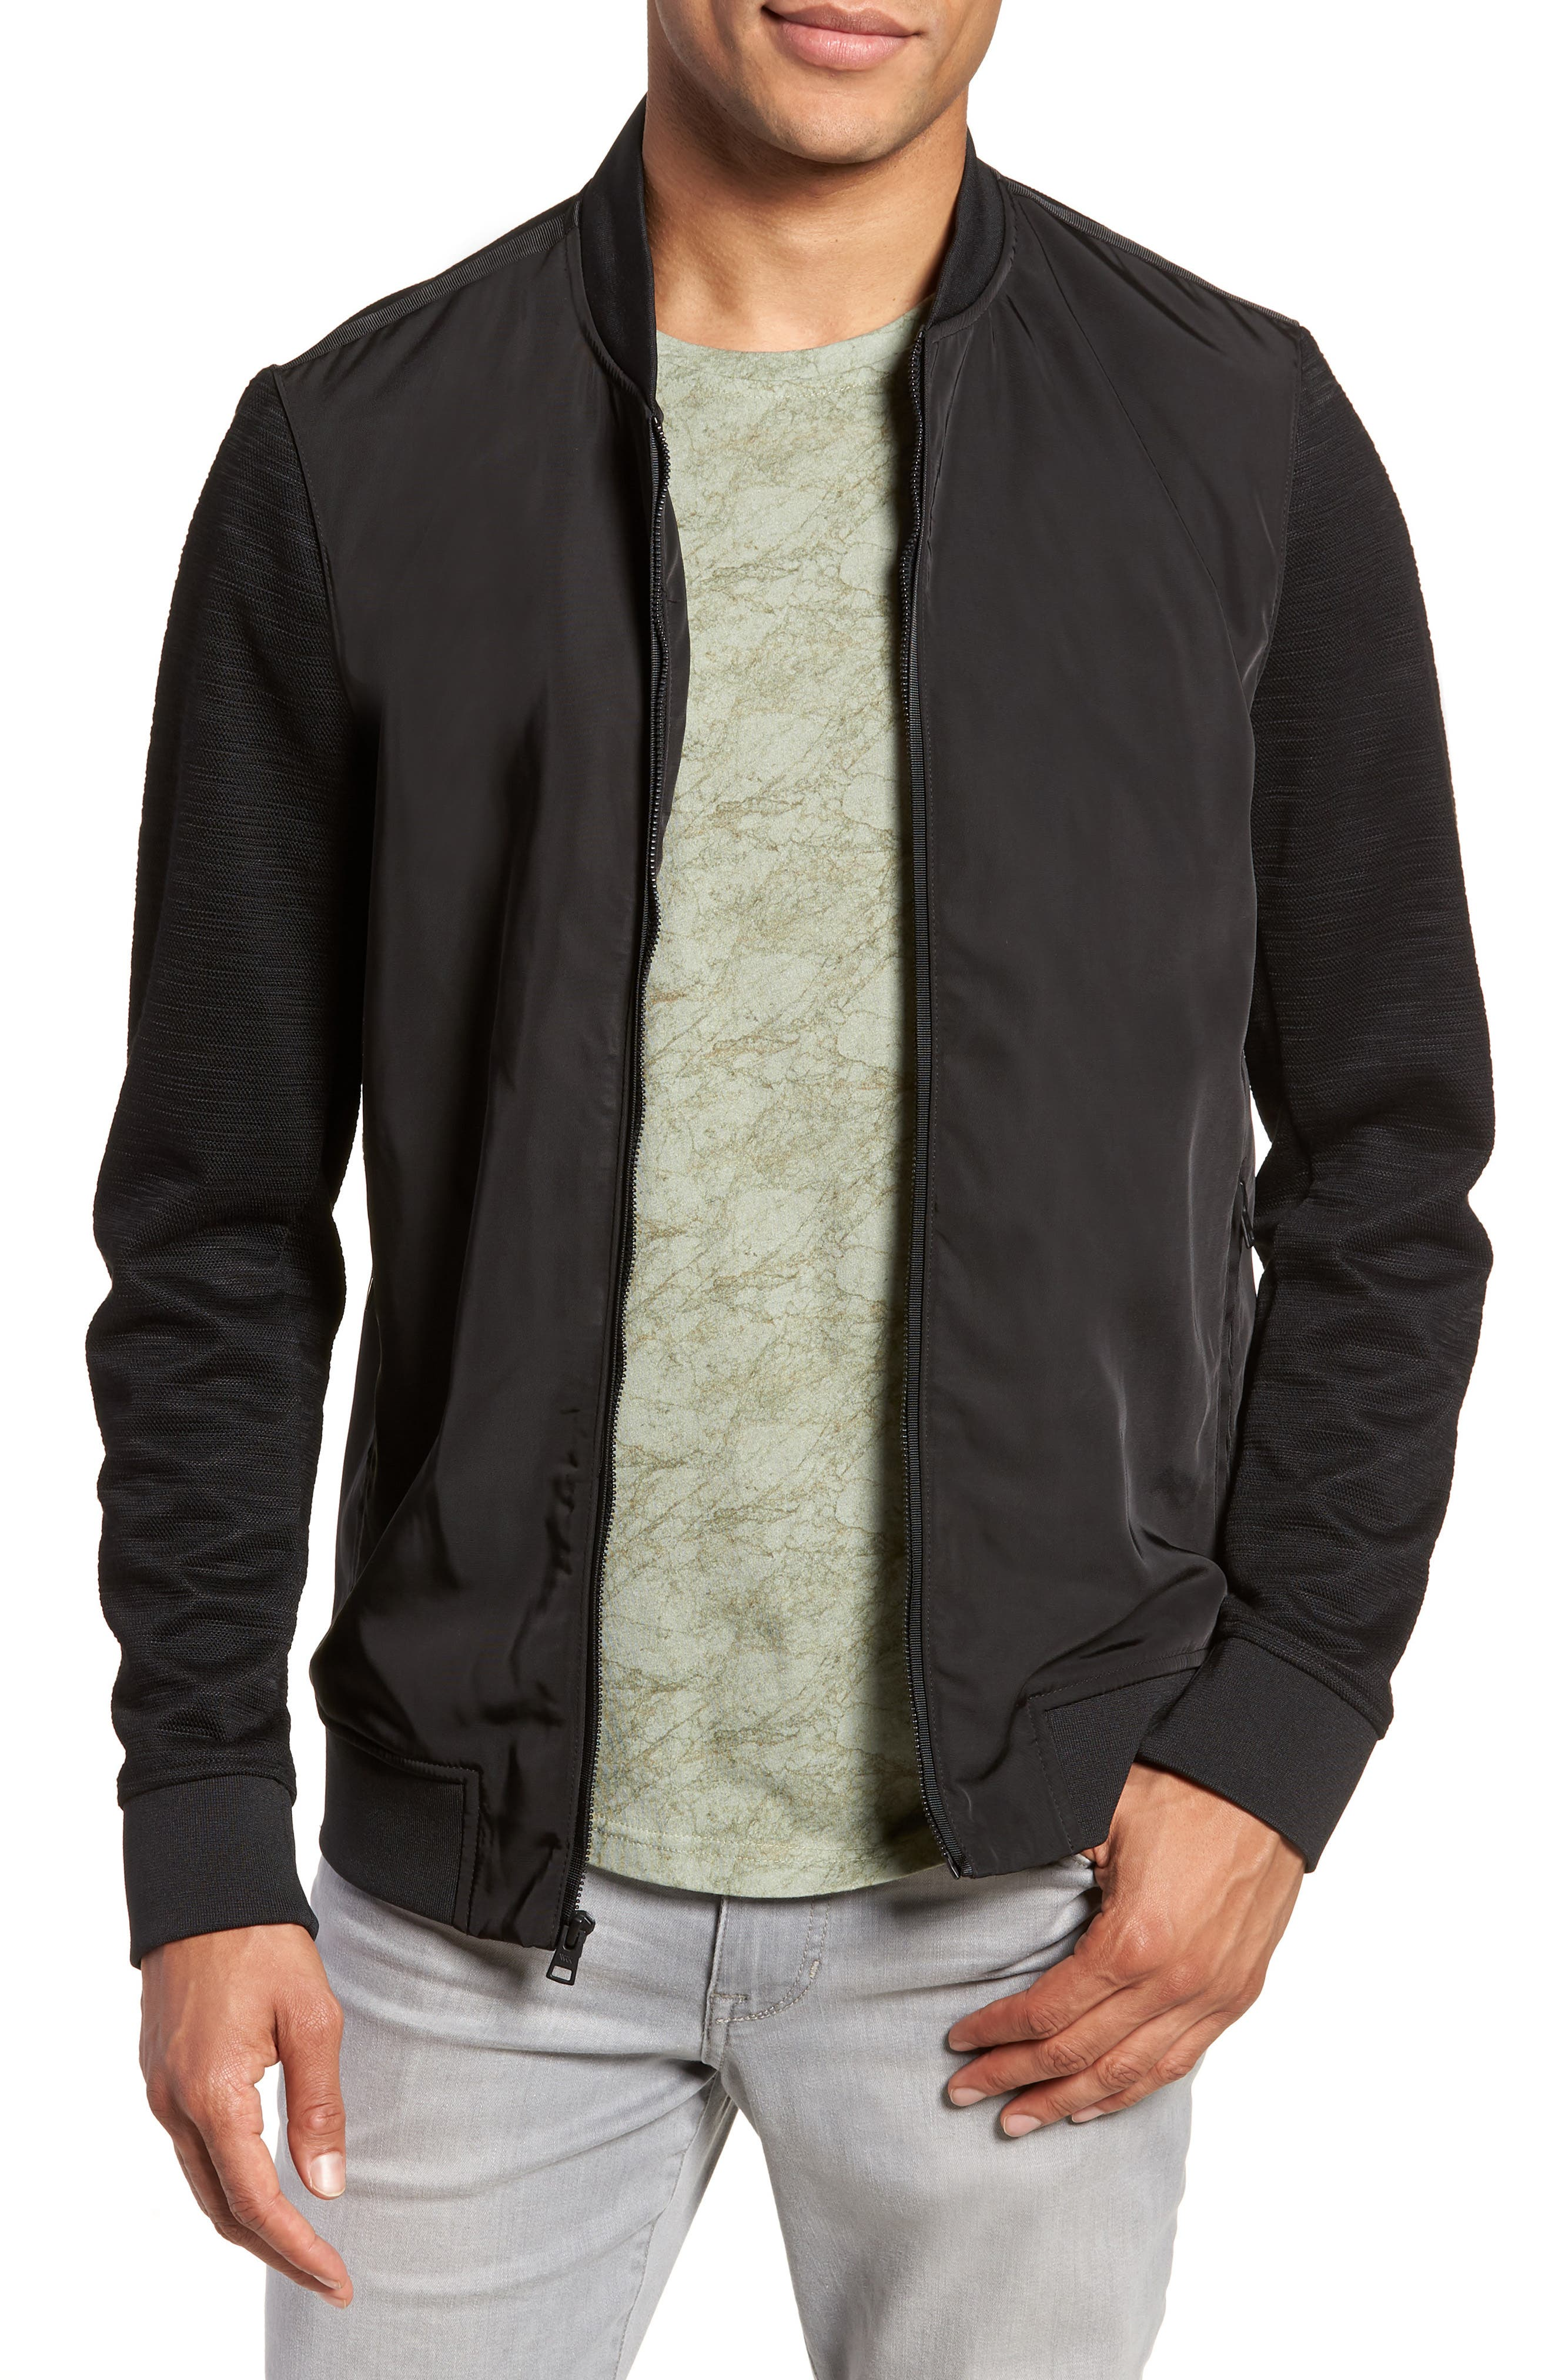 Gesso Slim Fit Bomber Jacket,                             Main thumbnail 1, color,                             001